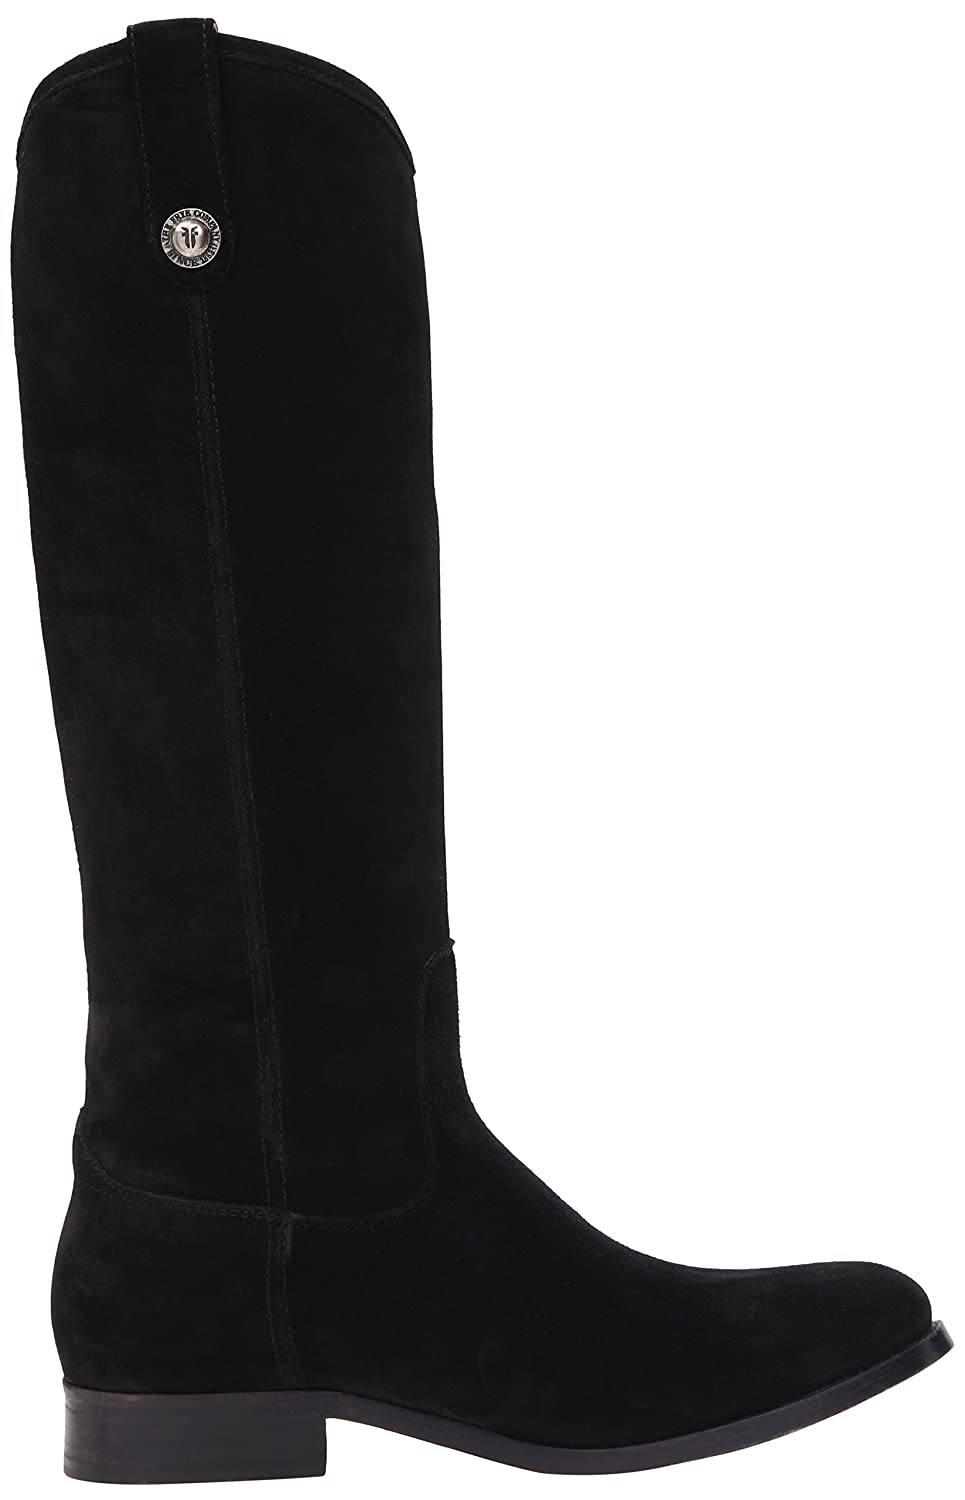 FRYE Women's Melissa Button US|Black-77173 Boot B0193XNLAK 7.5 B(M) US|Black-77173 Button a82e8c